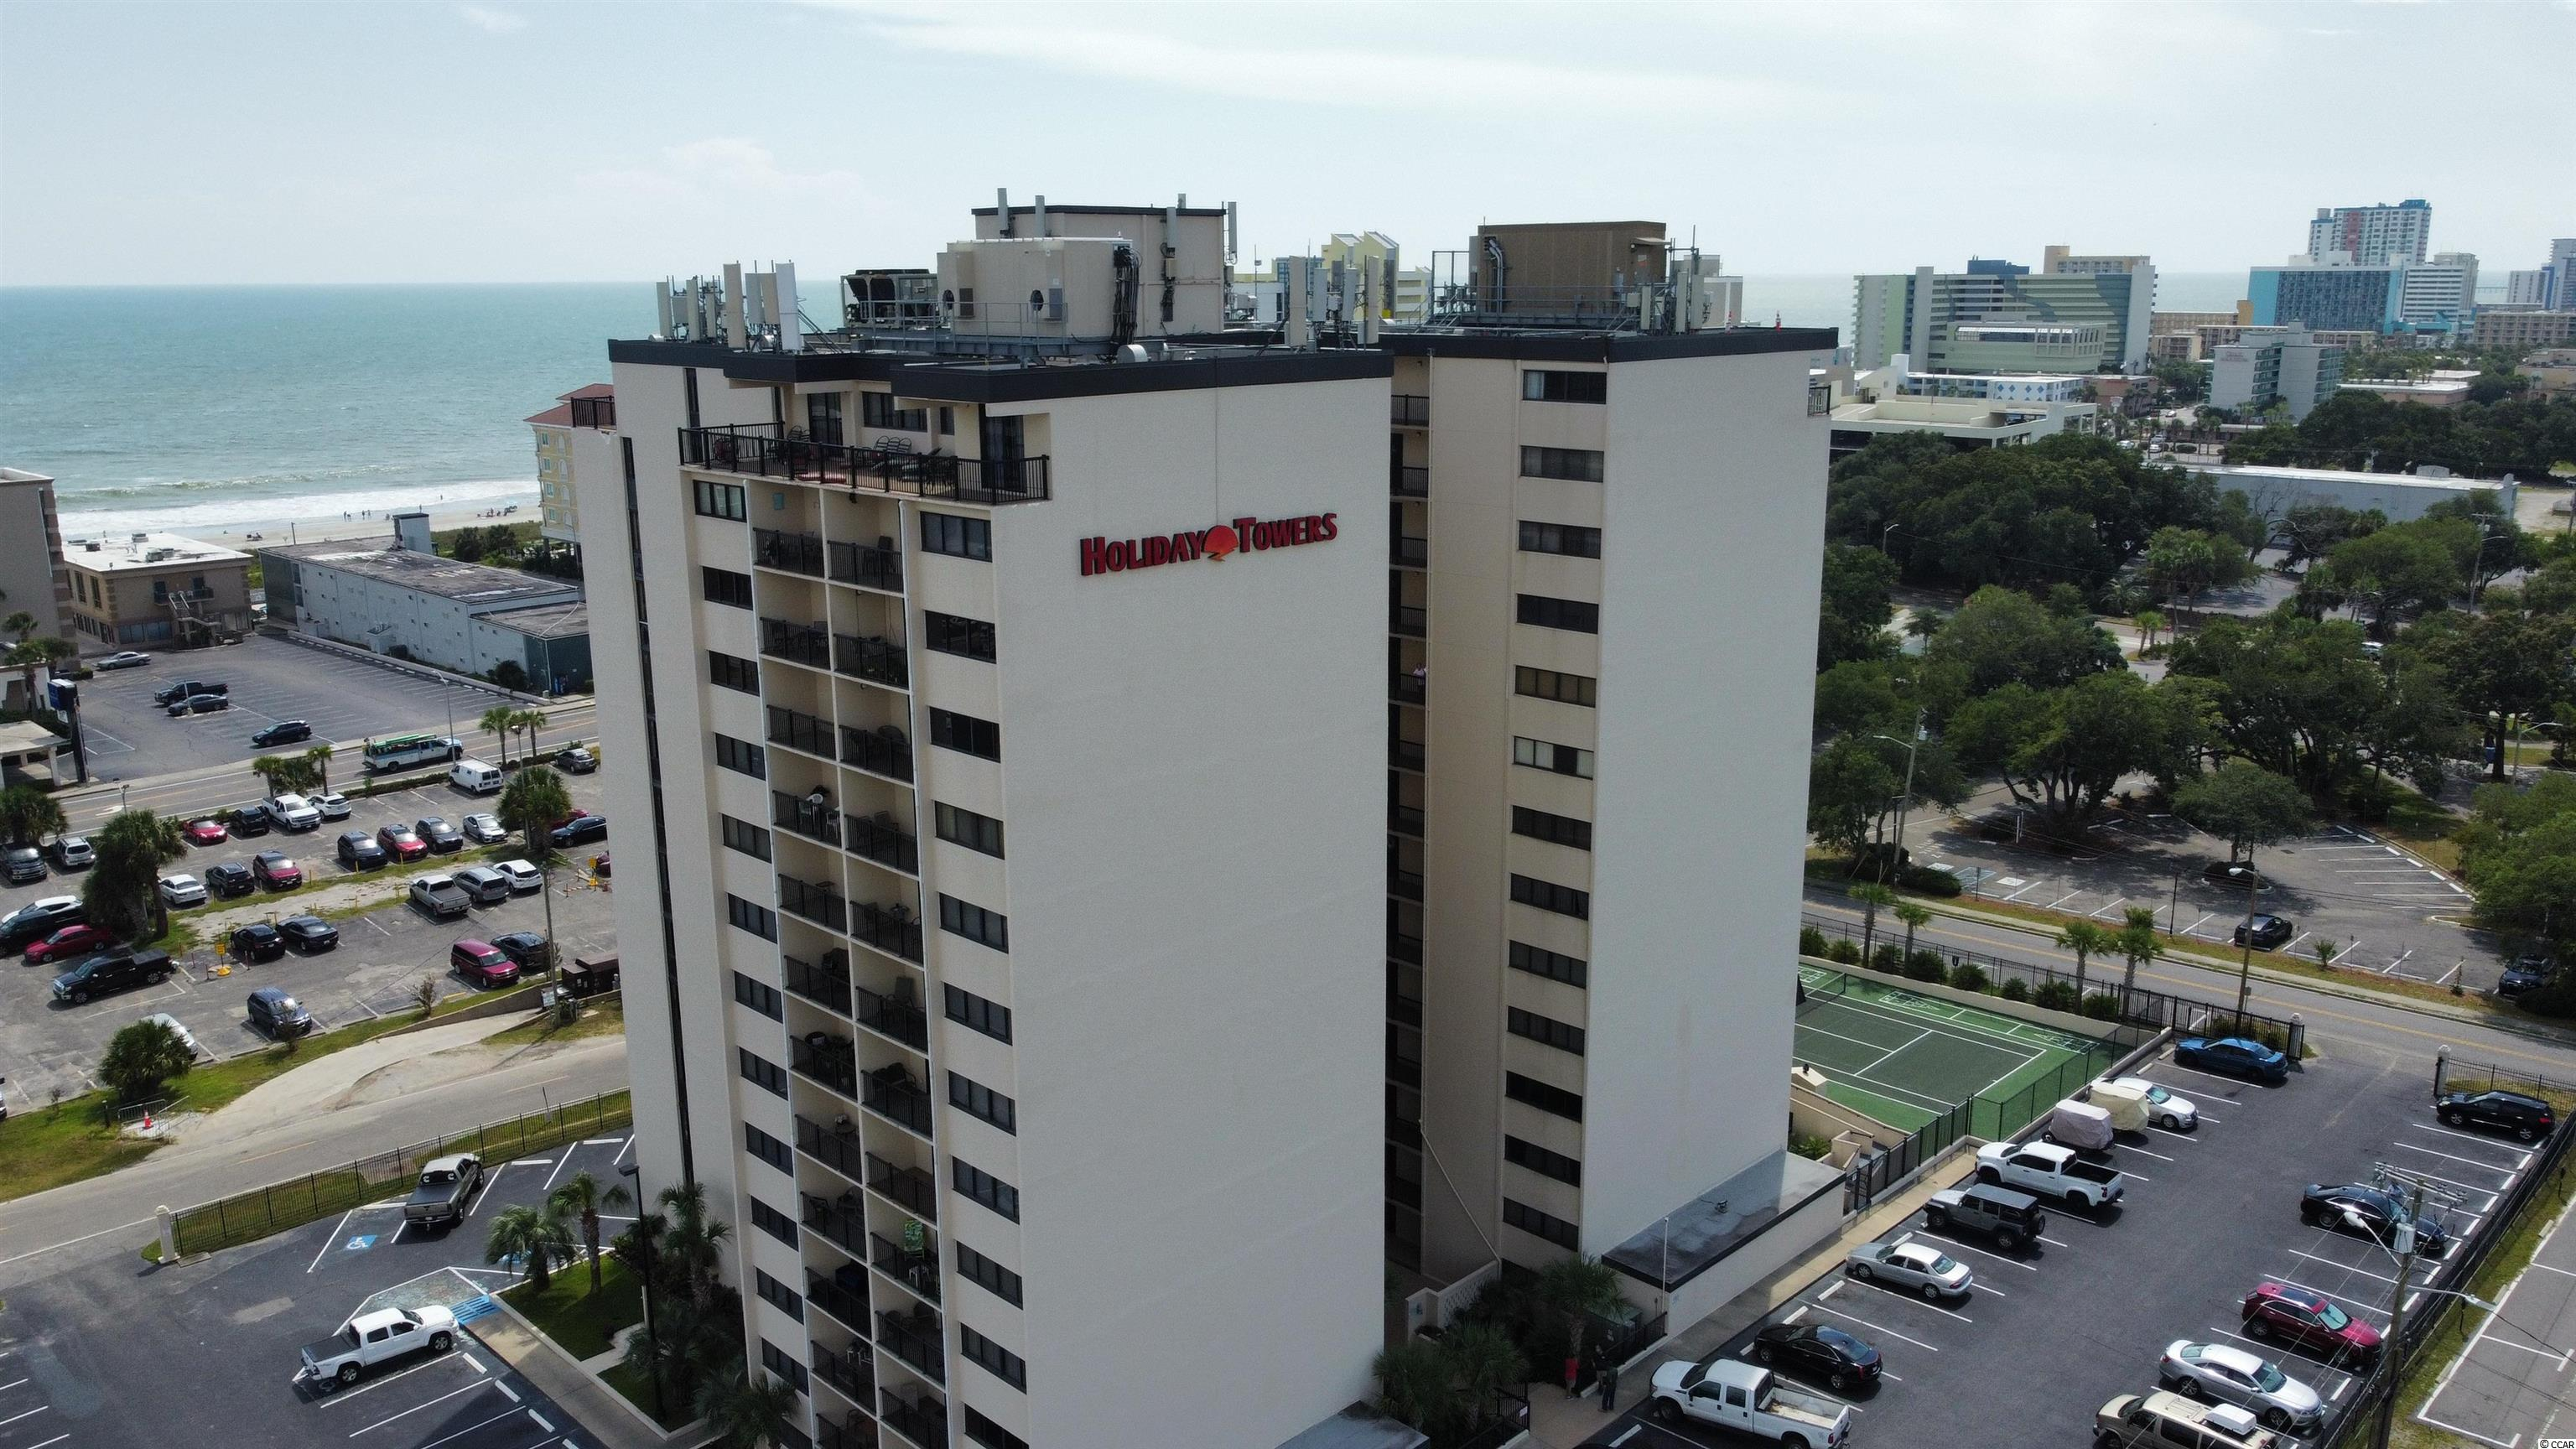 Welcome to Holiday Towers! Only steps to the beautiful ocean and located only minutes to downtown Myrtle Beach and all of the great attractions and shopping! This is a two-bedroom two-bathroom unit on the 6th floor. Step out onto your balcony and take in the views of the ocean, shopping, attractions, and amenities that Myrtle Beach has to offer. There are so many great features about this unit like a lockable owner's closet, Walk to the beach, Large storage/laundry room in the unit, Balcony, two full bathrooms and so much more! Come and make Holiday Towers your next home, investment, or 2nd home... The beach is waiting!